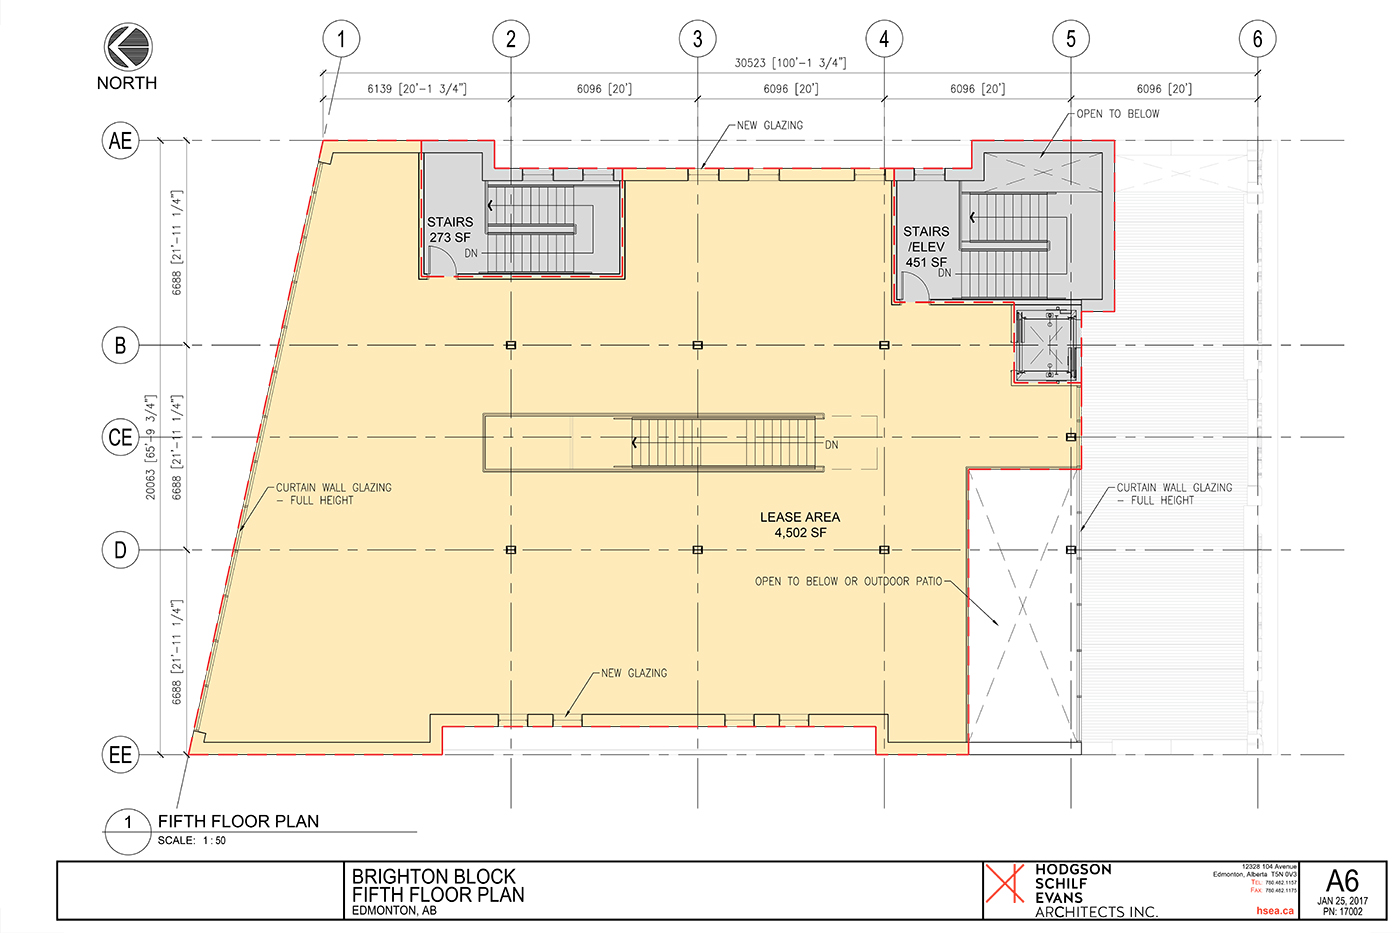 Brighton-Block-Concept-Plans-0125-5 copy.jpg